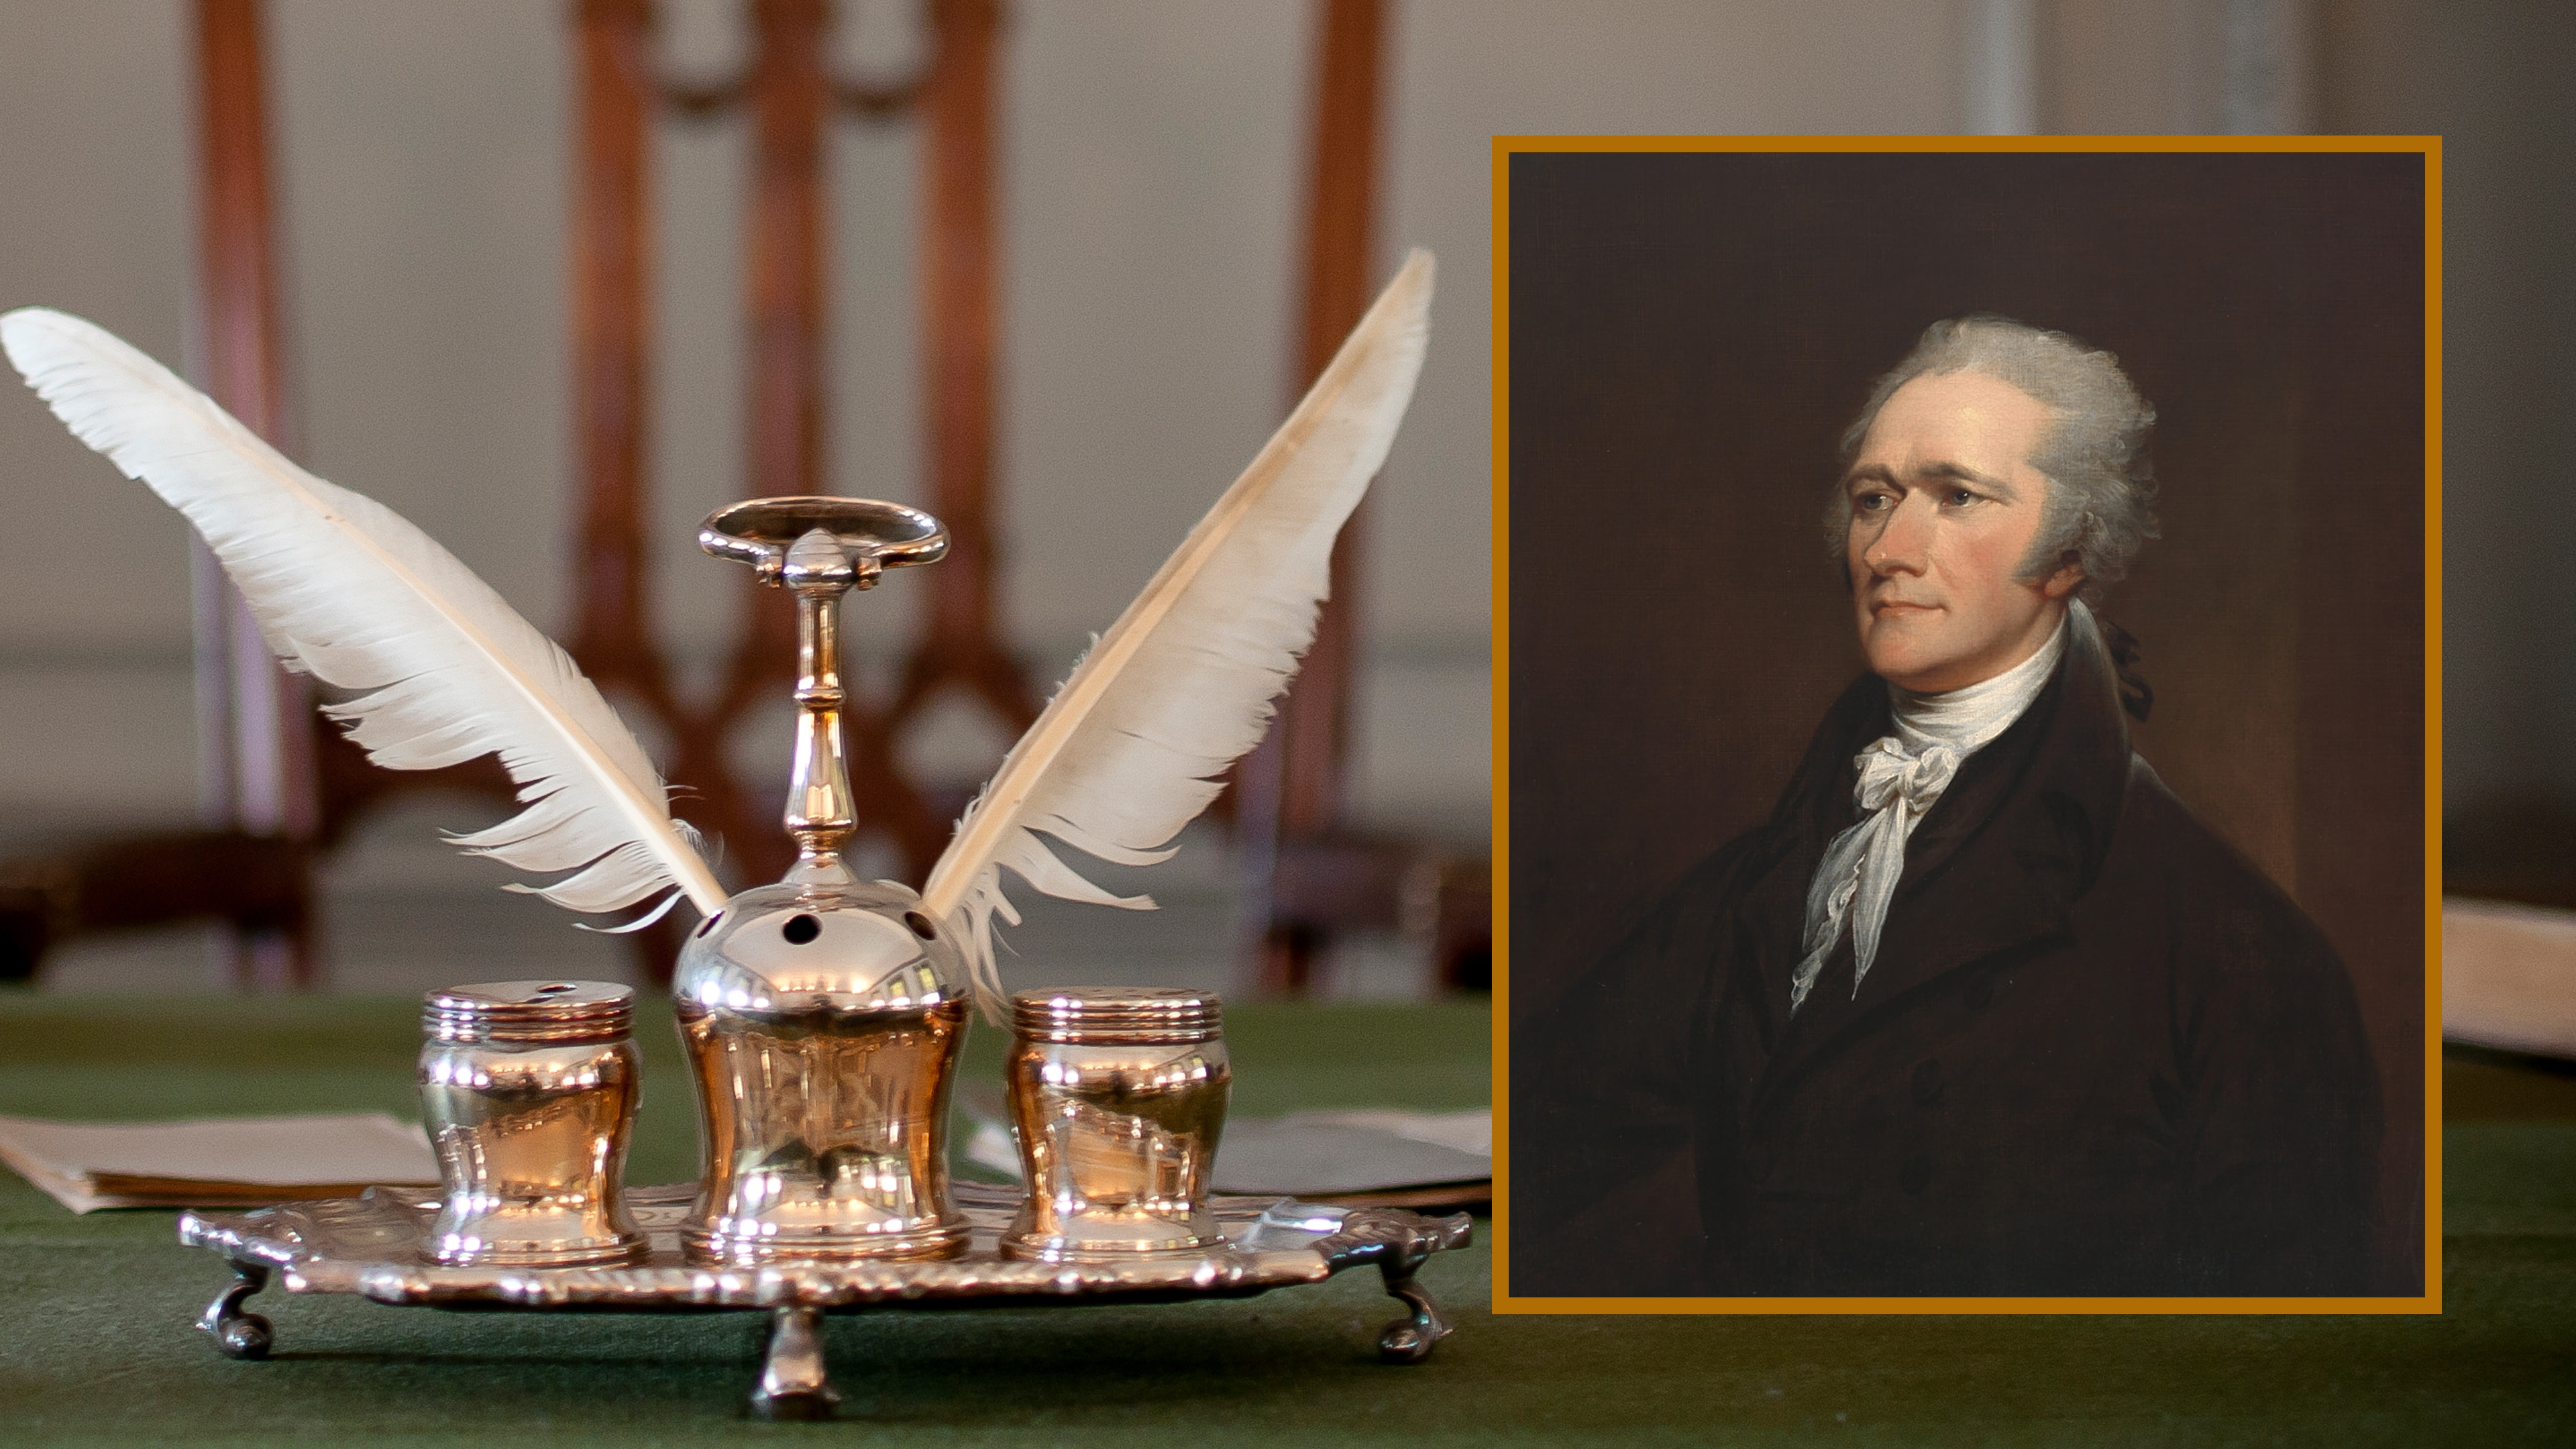 Syng Inkstand, with feather quills poised in a polished silver inkstand on a green velvet desktop, with a wooden chair in the background. Superimposed: Alexander Hamilton's portrait is framed on the right side.